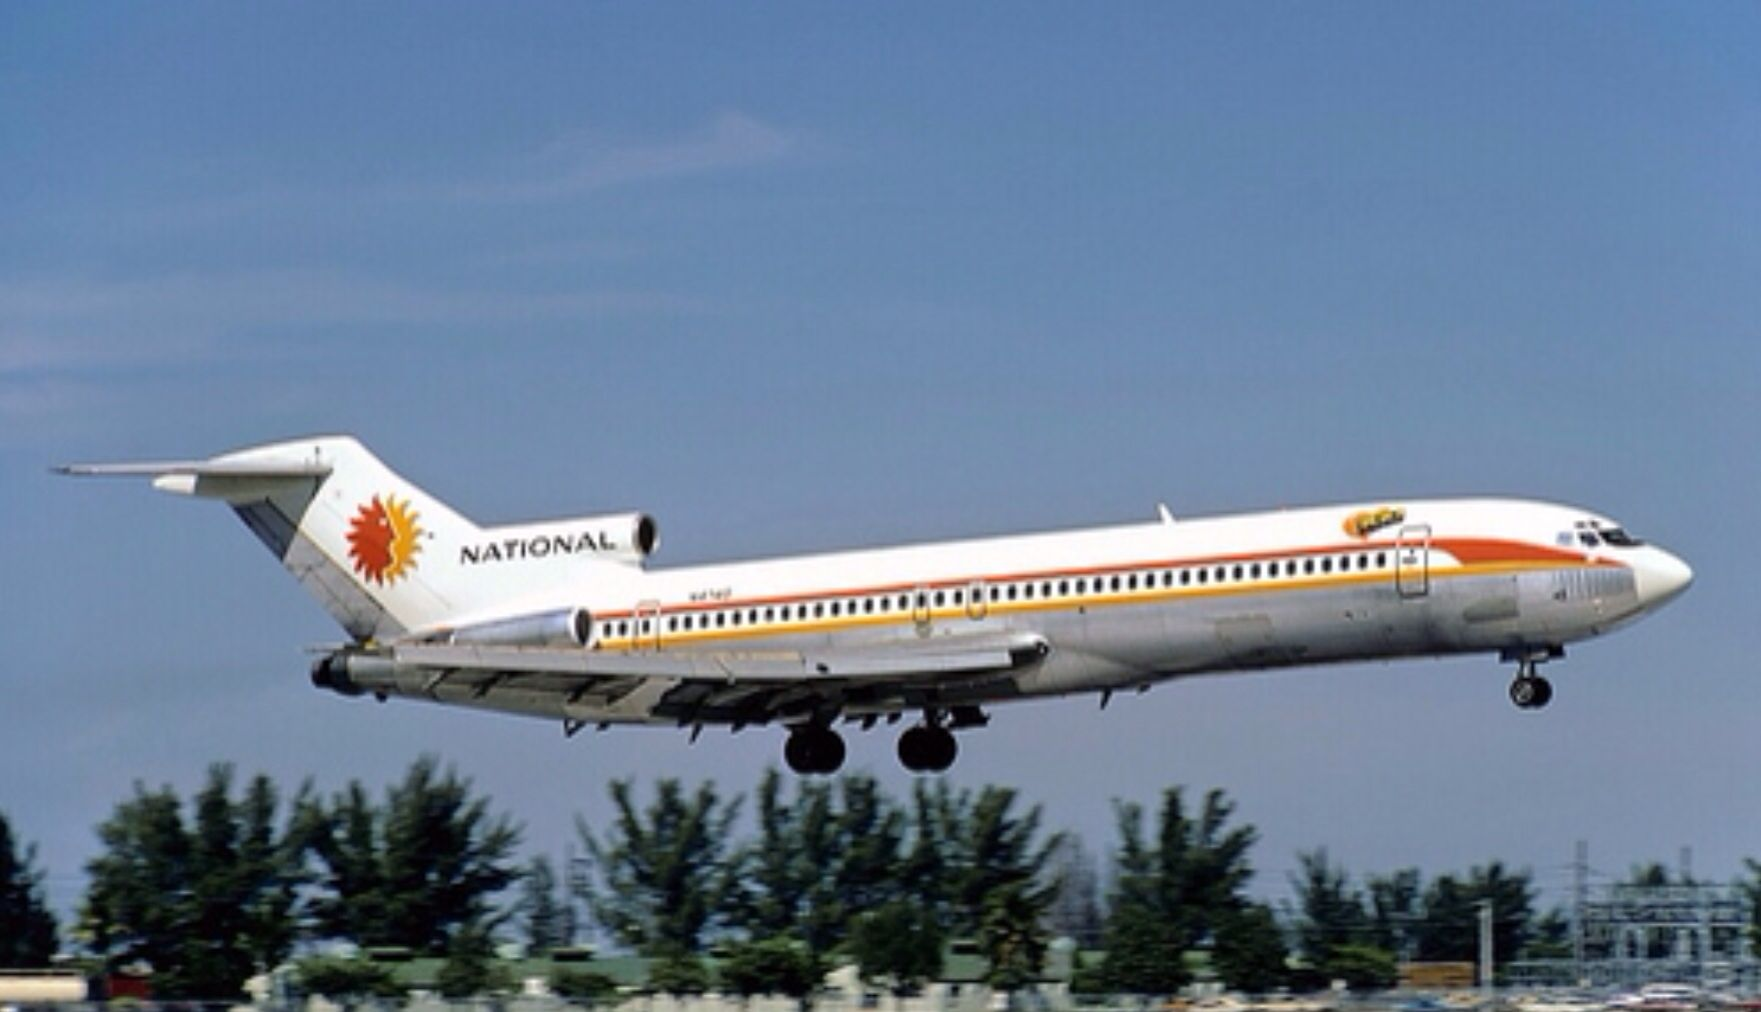 National Airlines 727200 1980 Airplanes n Airliners